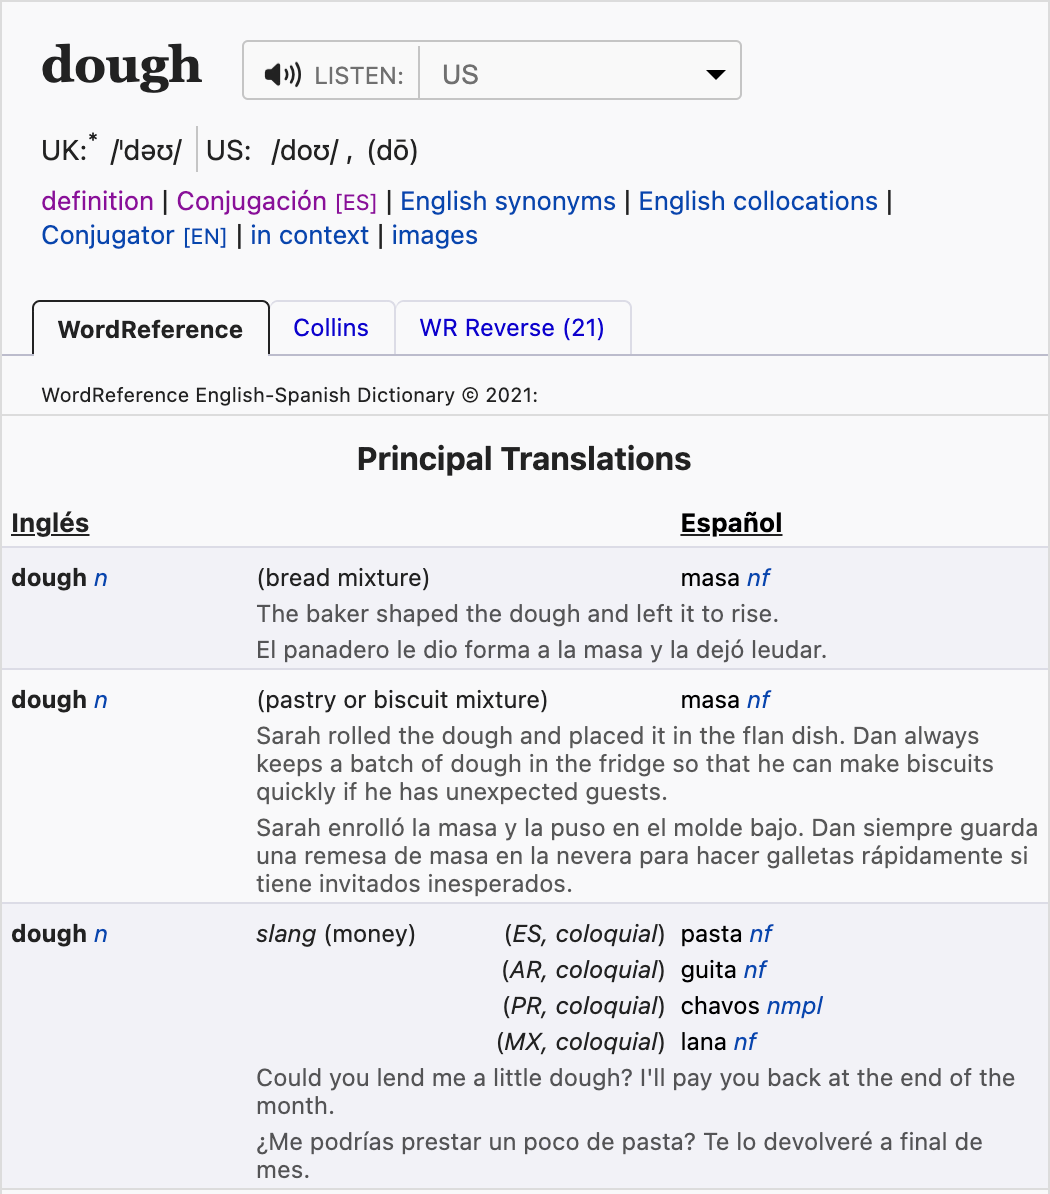 """Screenshot of the WordReference.com entry for """"dough"""". It includes three different """"Principle Translations"""" corresponding to different Spanish words, and the final principle translation includes slang terms for """"money""""."""